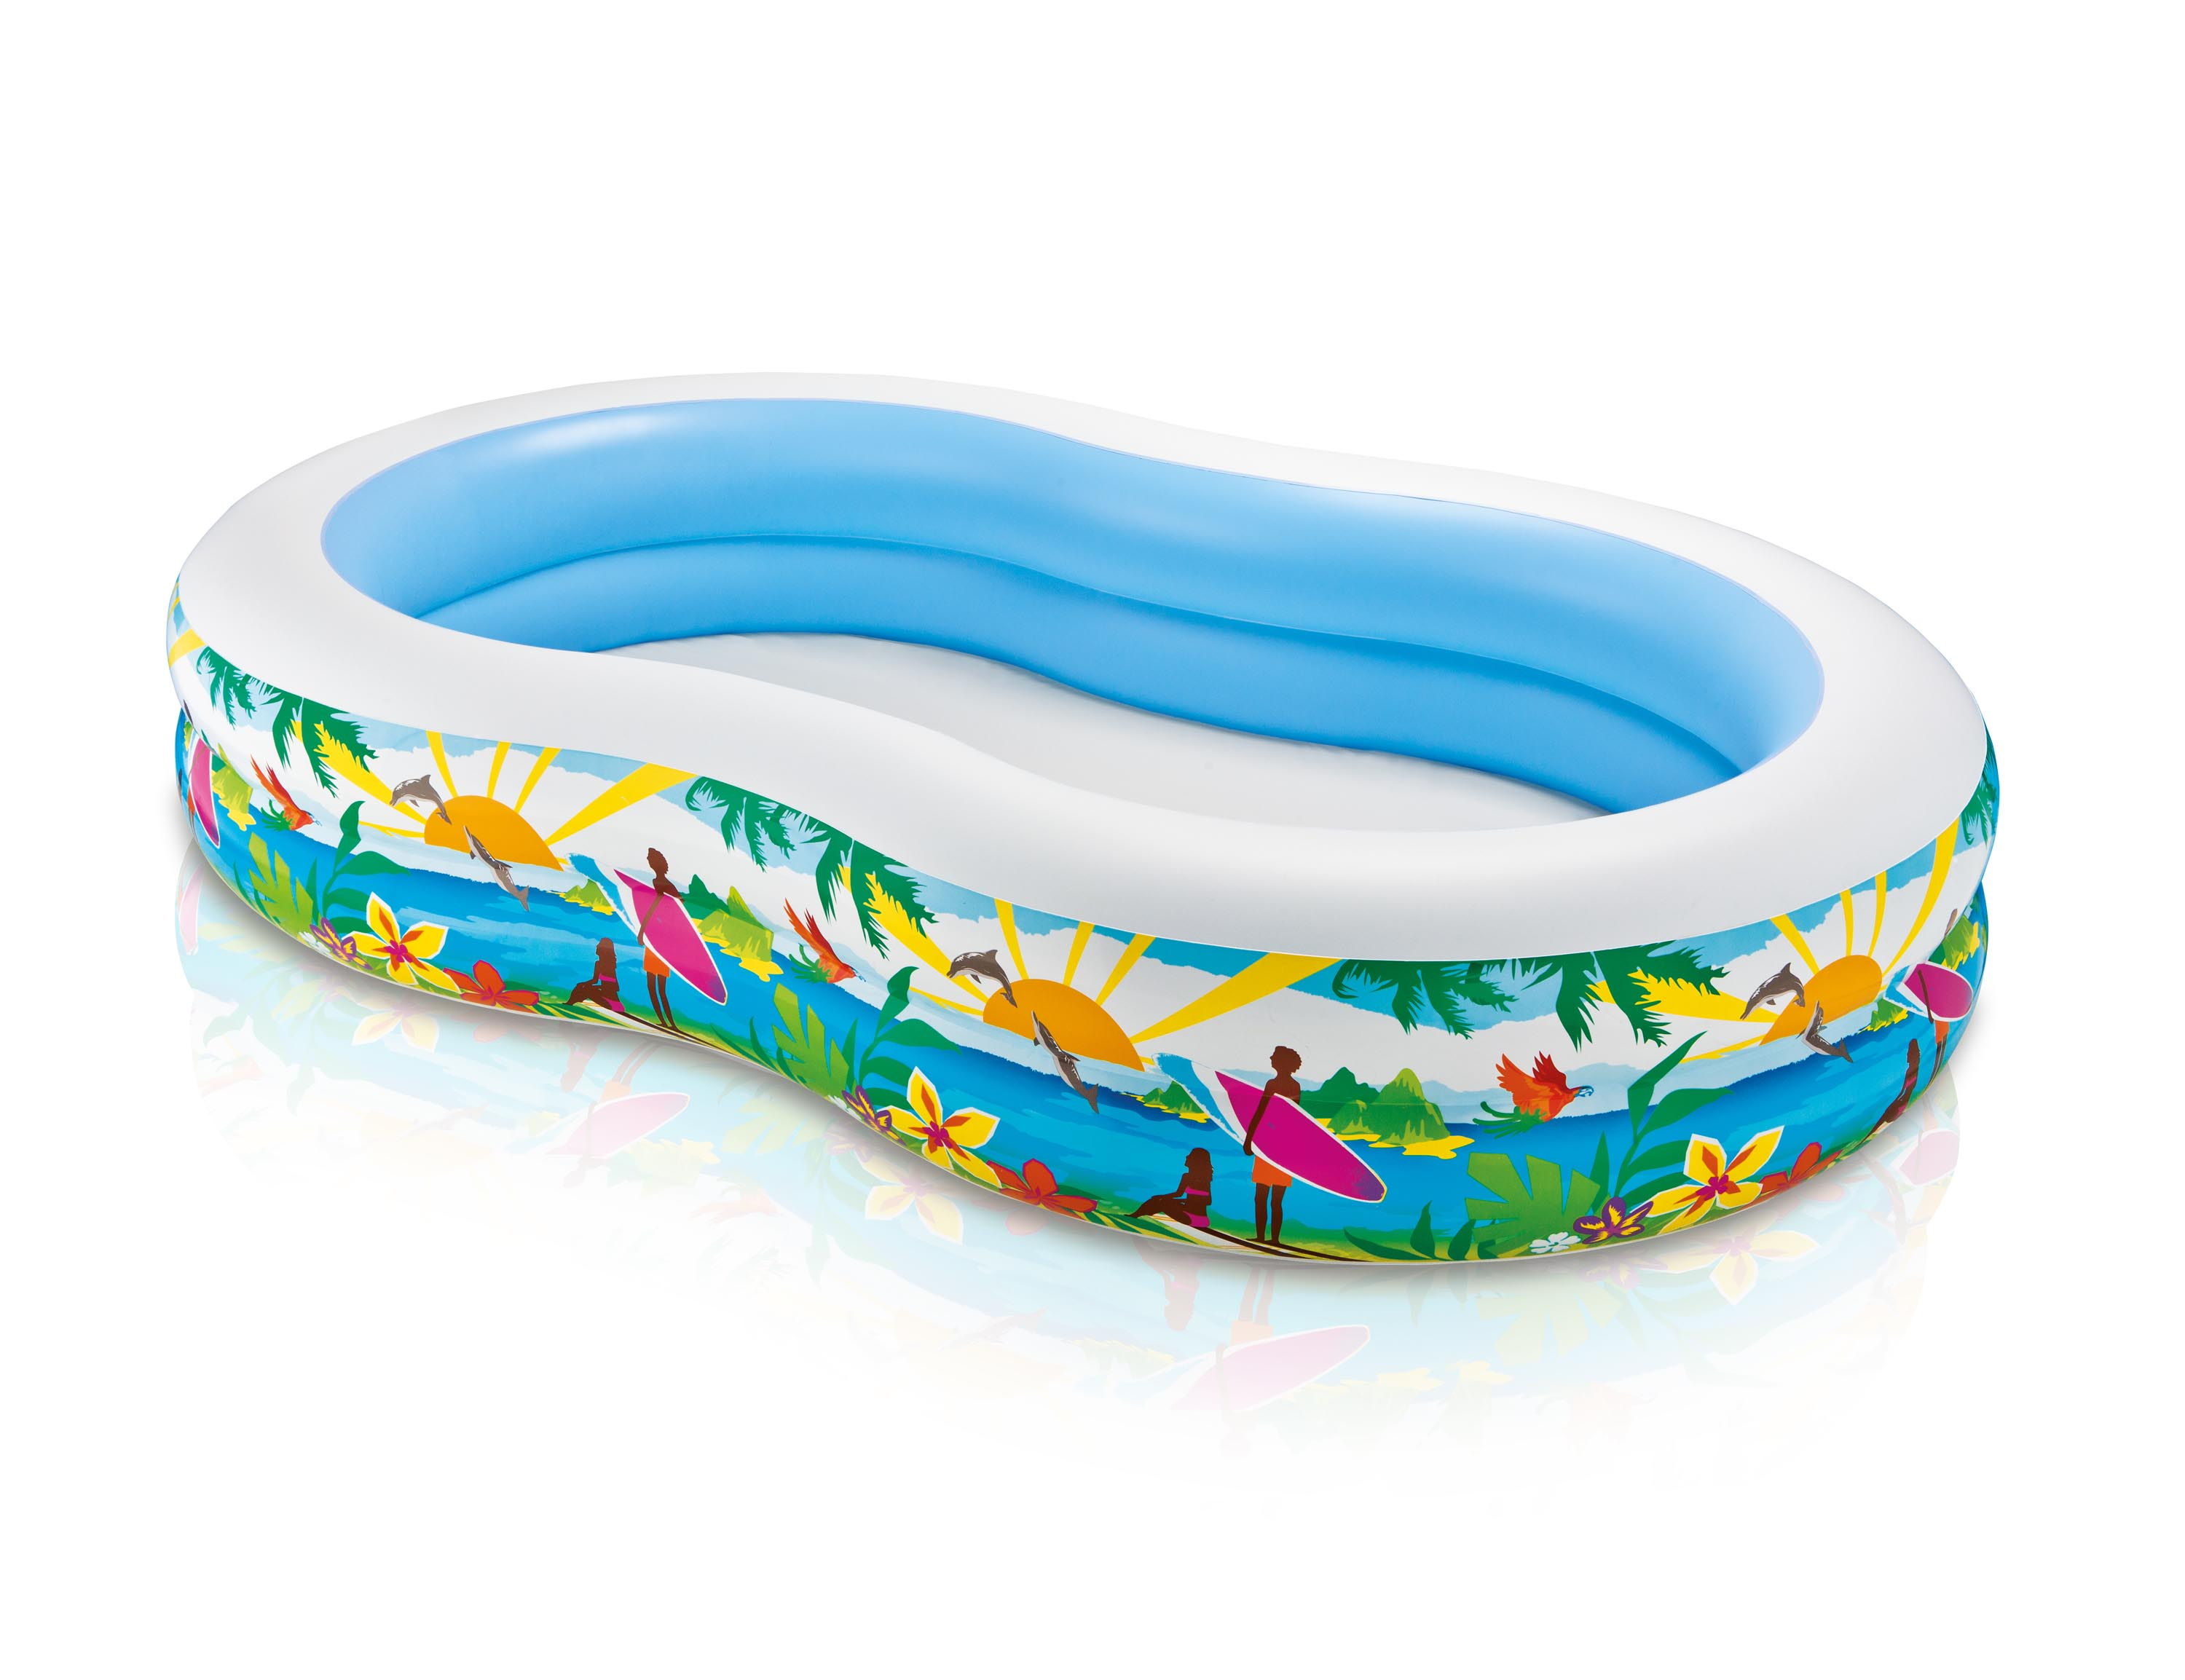 Intex 8.6' x 5.25' x 1.2' Paradise Lagoon Inflatable Kiddie Swimming Pool by Intex Recreation Corp.